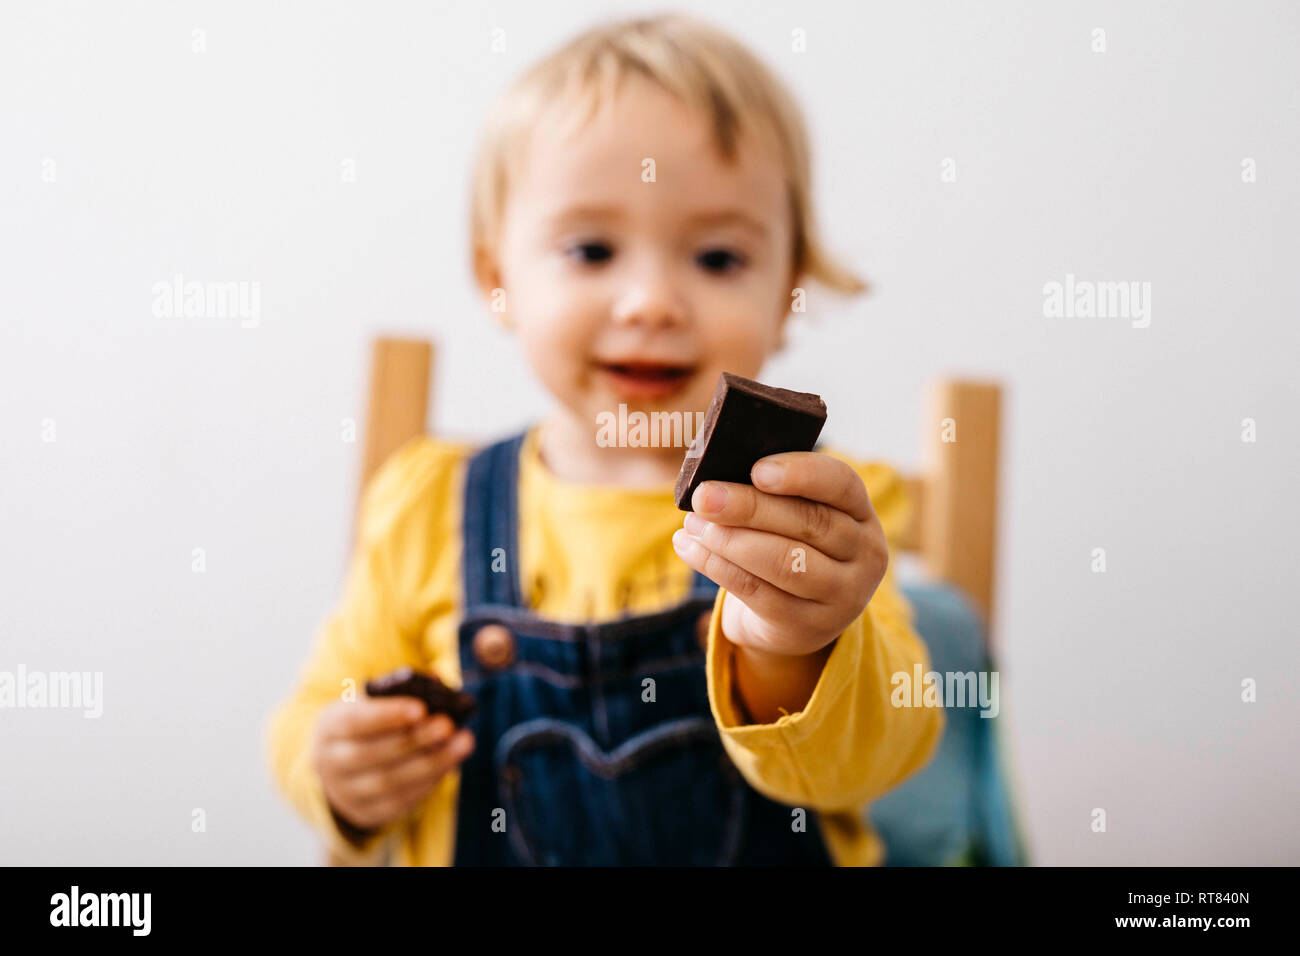 Hand of smiling toddler girl holding piece of chocolate, close-up - Stock Image